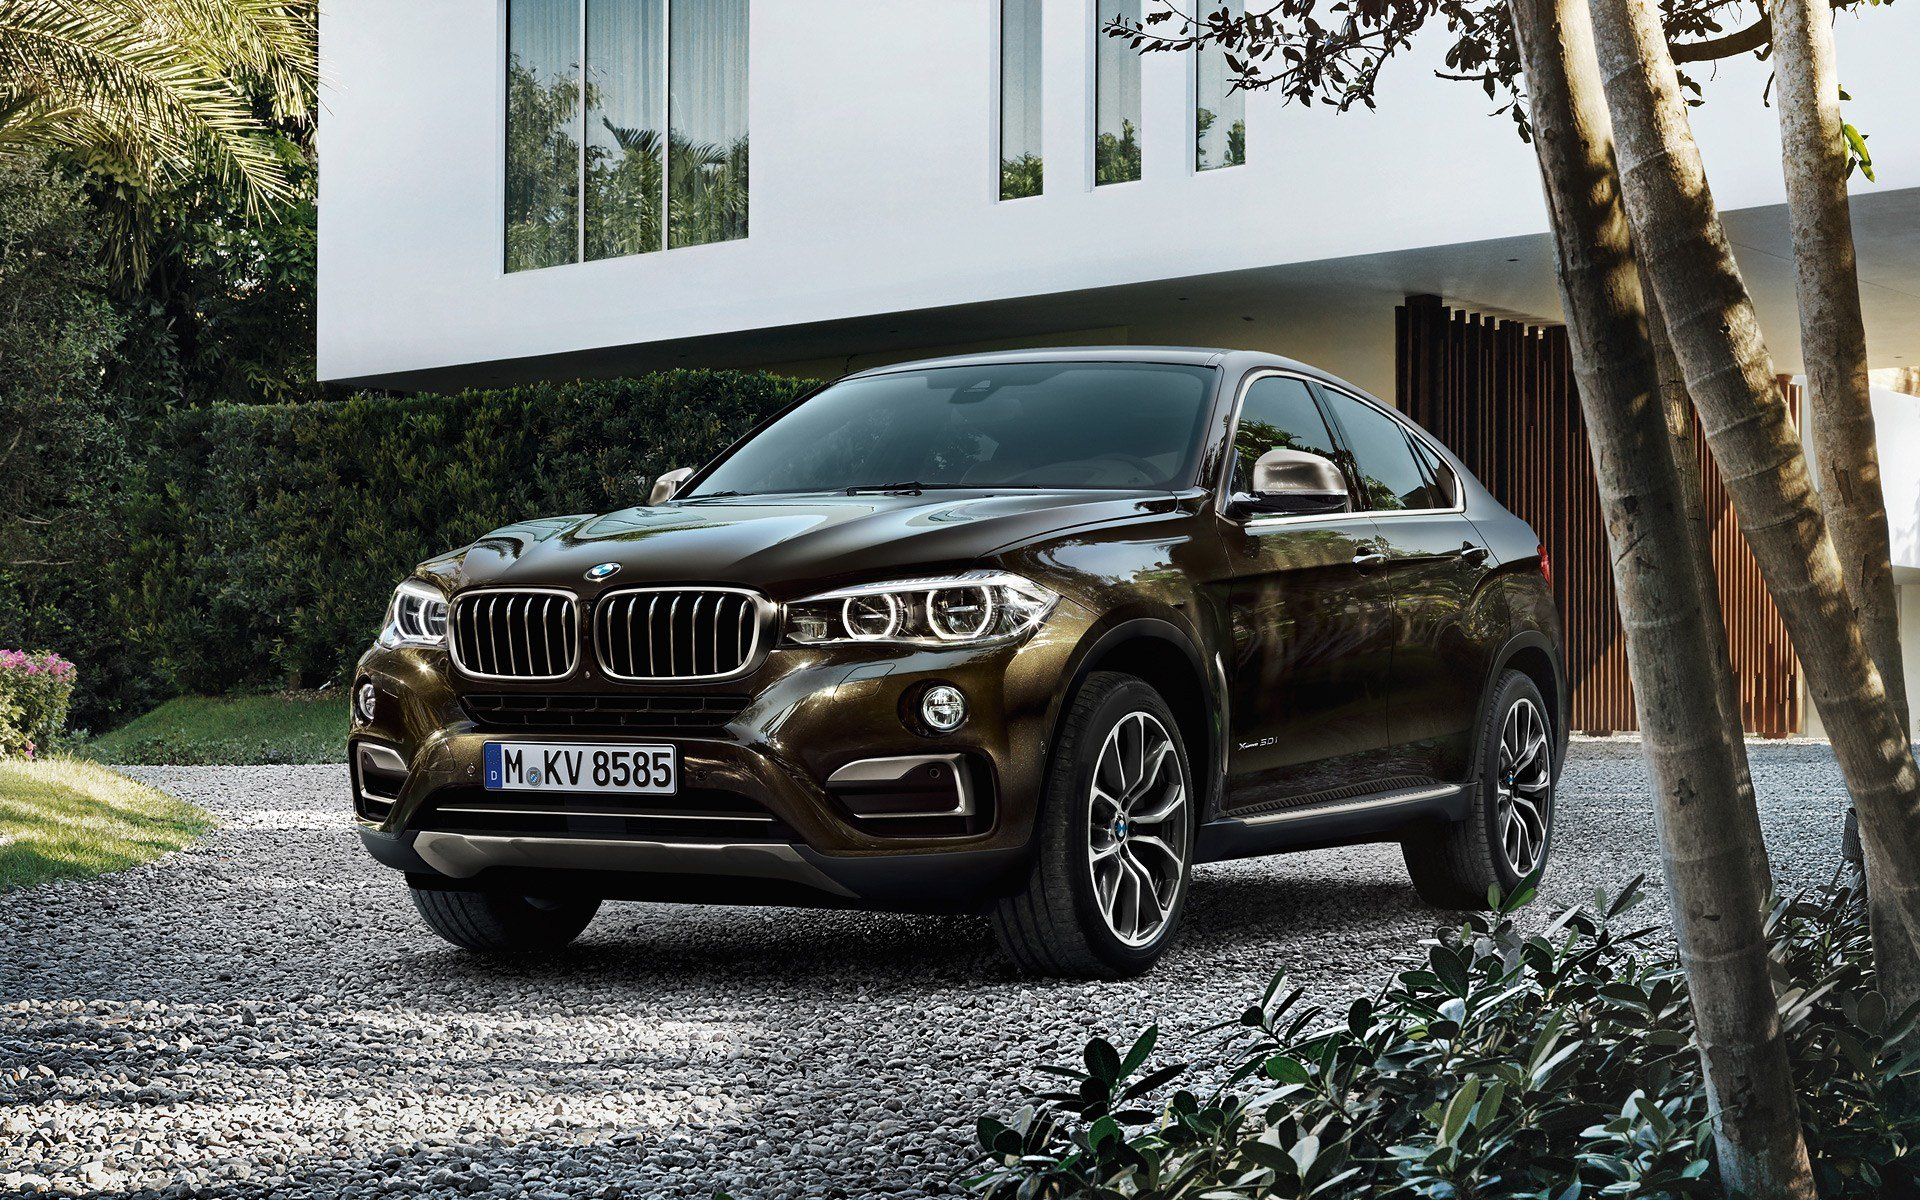 Latest 2016 Bmw X6 Wallpapers Autoevolution Free Download